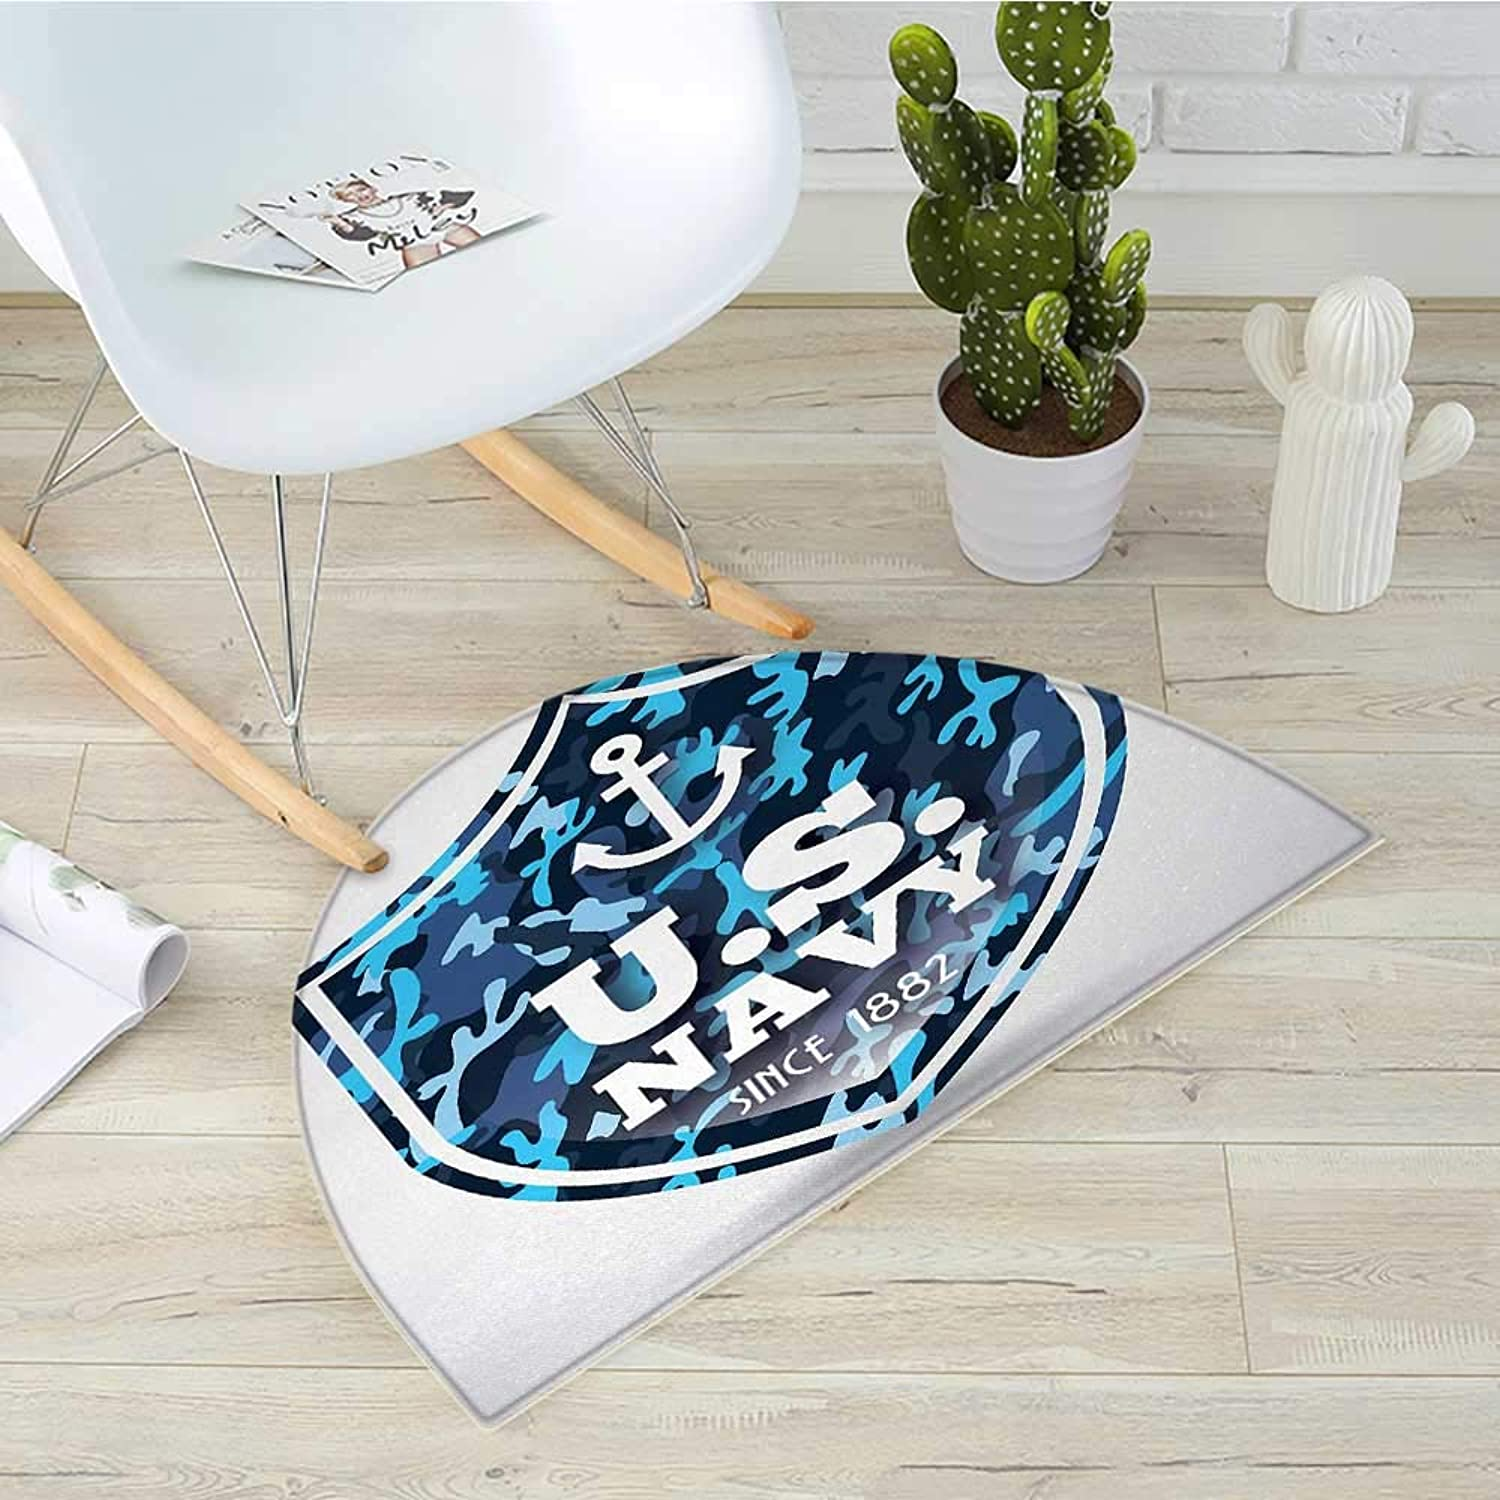 Anchor Semicircular CushionMilitary Camouflage with US Navy Since 1882 Uniform Army Force Ship Entry Door Mat H 39.3  xD 59  bluee White Navy bluee